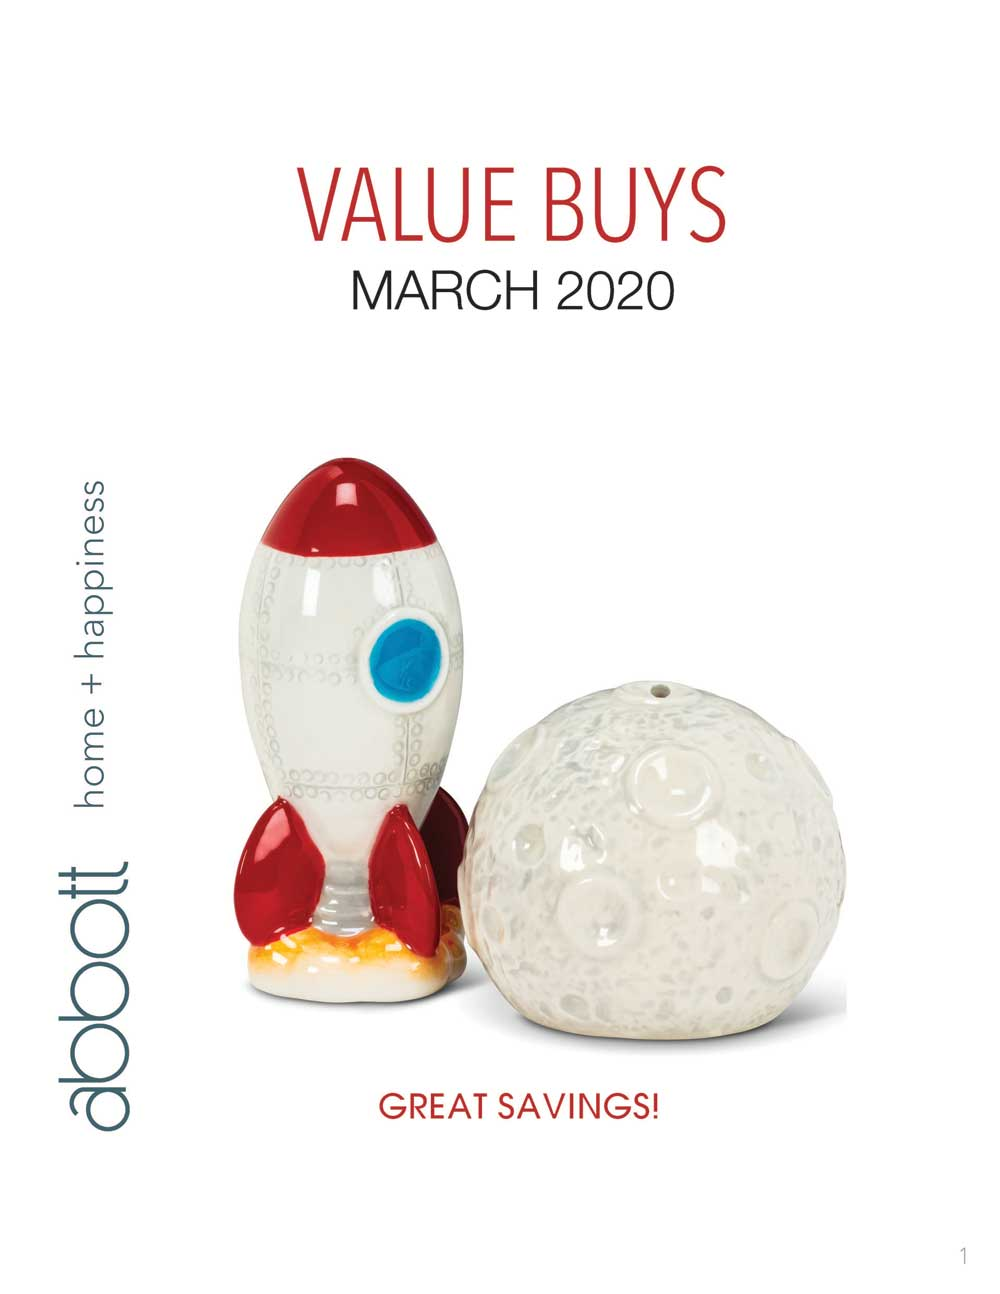 https://assets.abbottcollection.com/wp-content/uploads/2020/05/06163153/Value-Buys-March-2020-cover-web.jpg